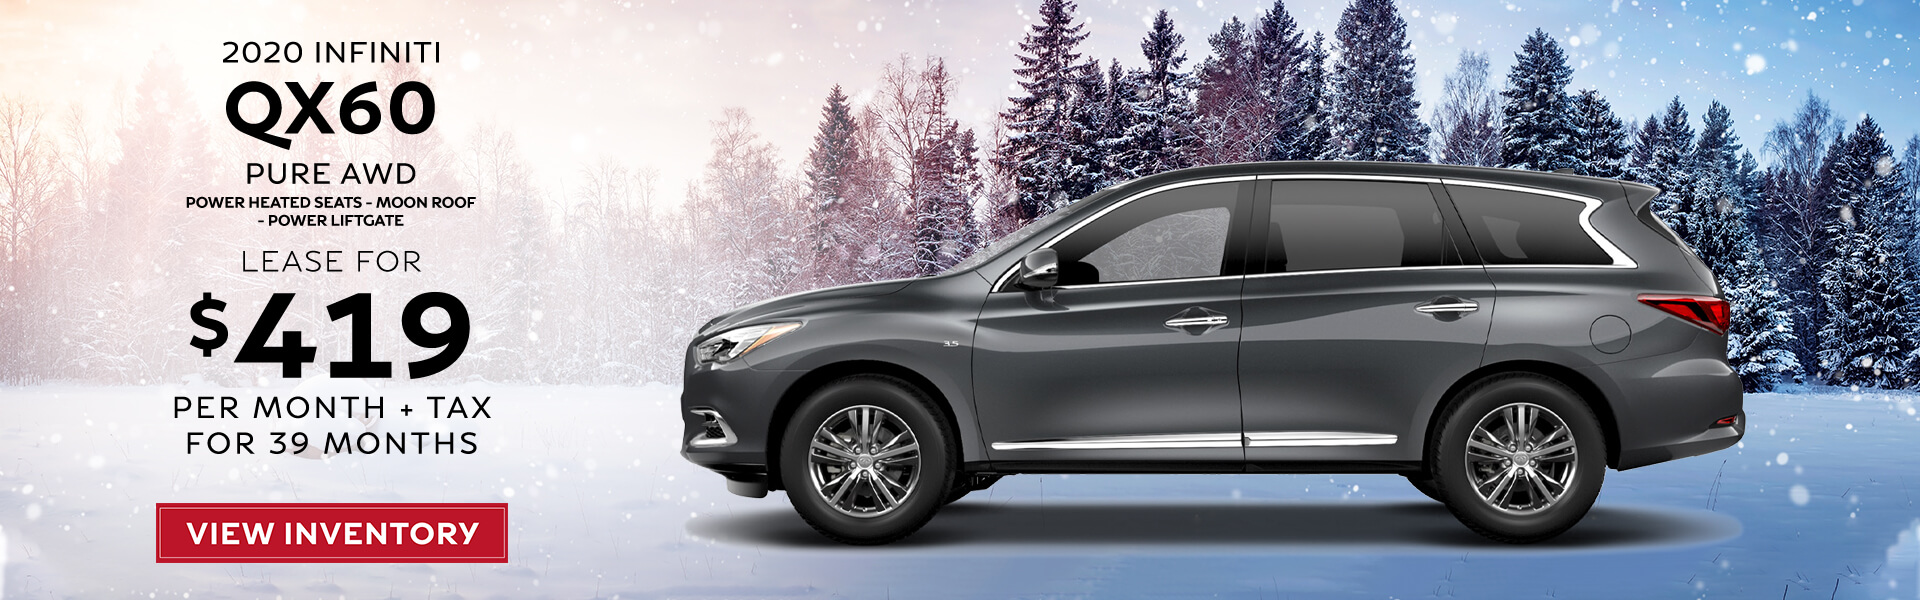 QX60 - Lease for 419